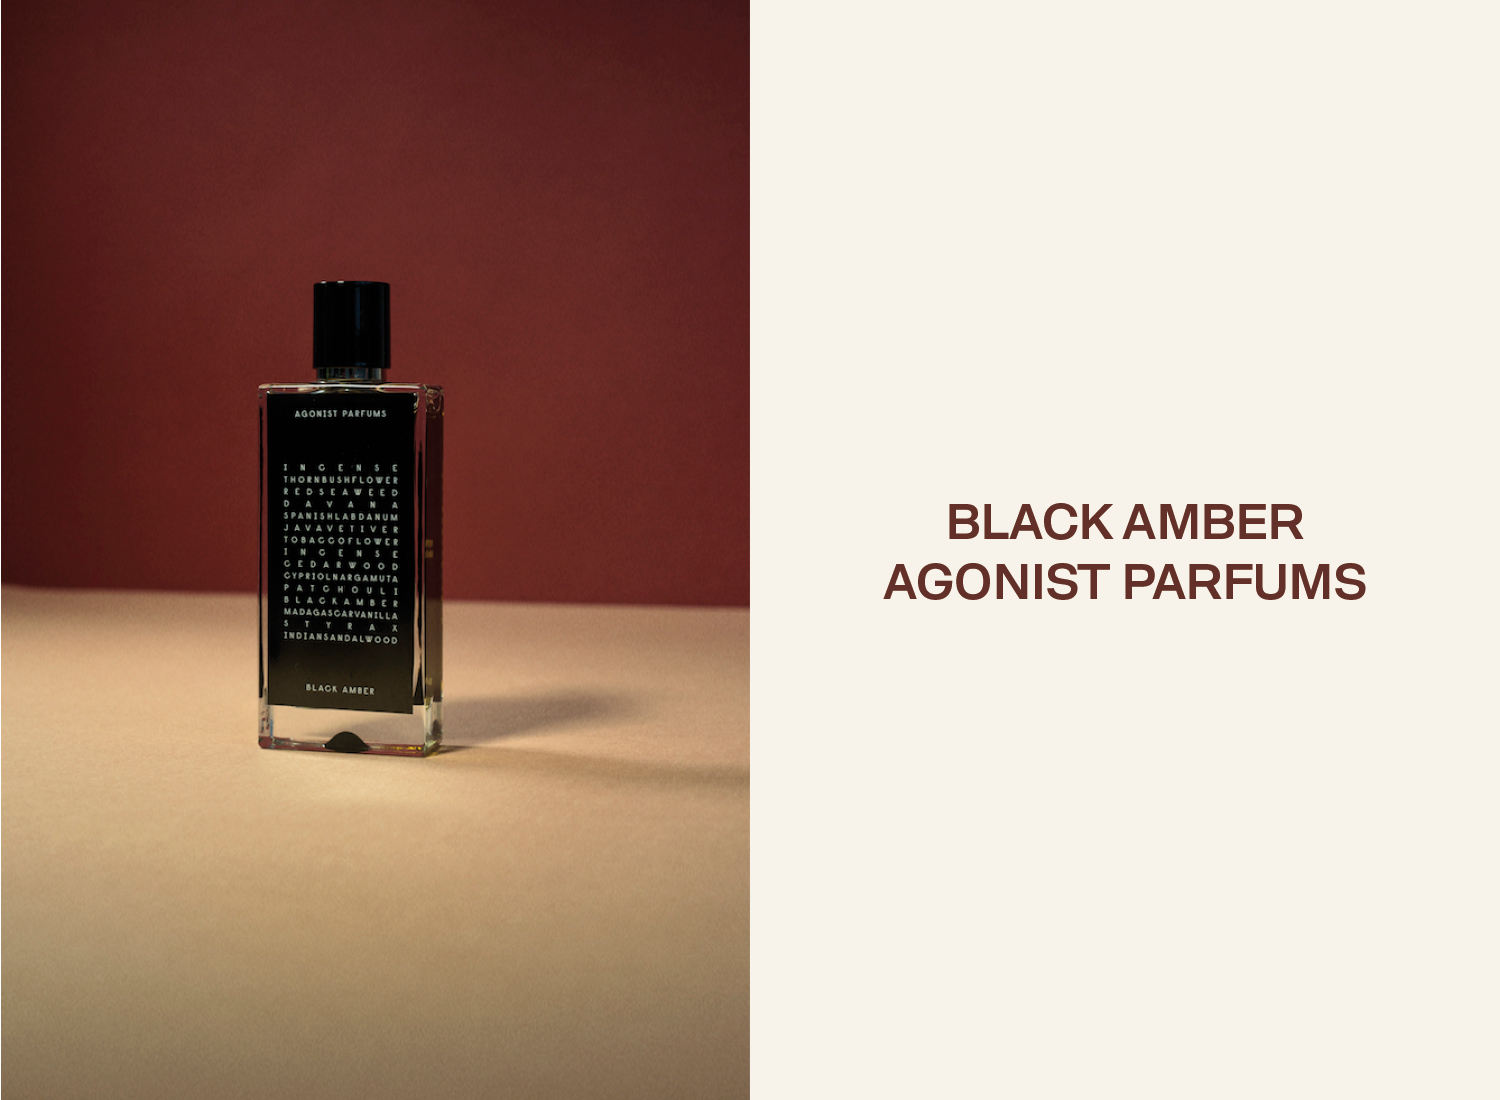 Sleek Perfume Story: Agonist Parfums